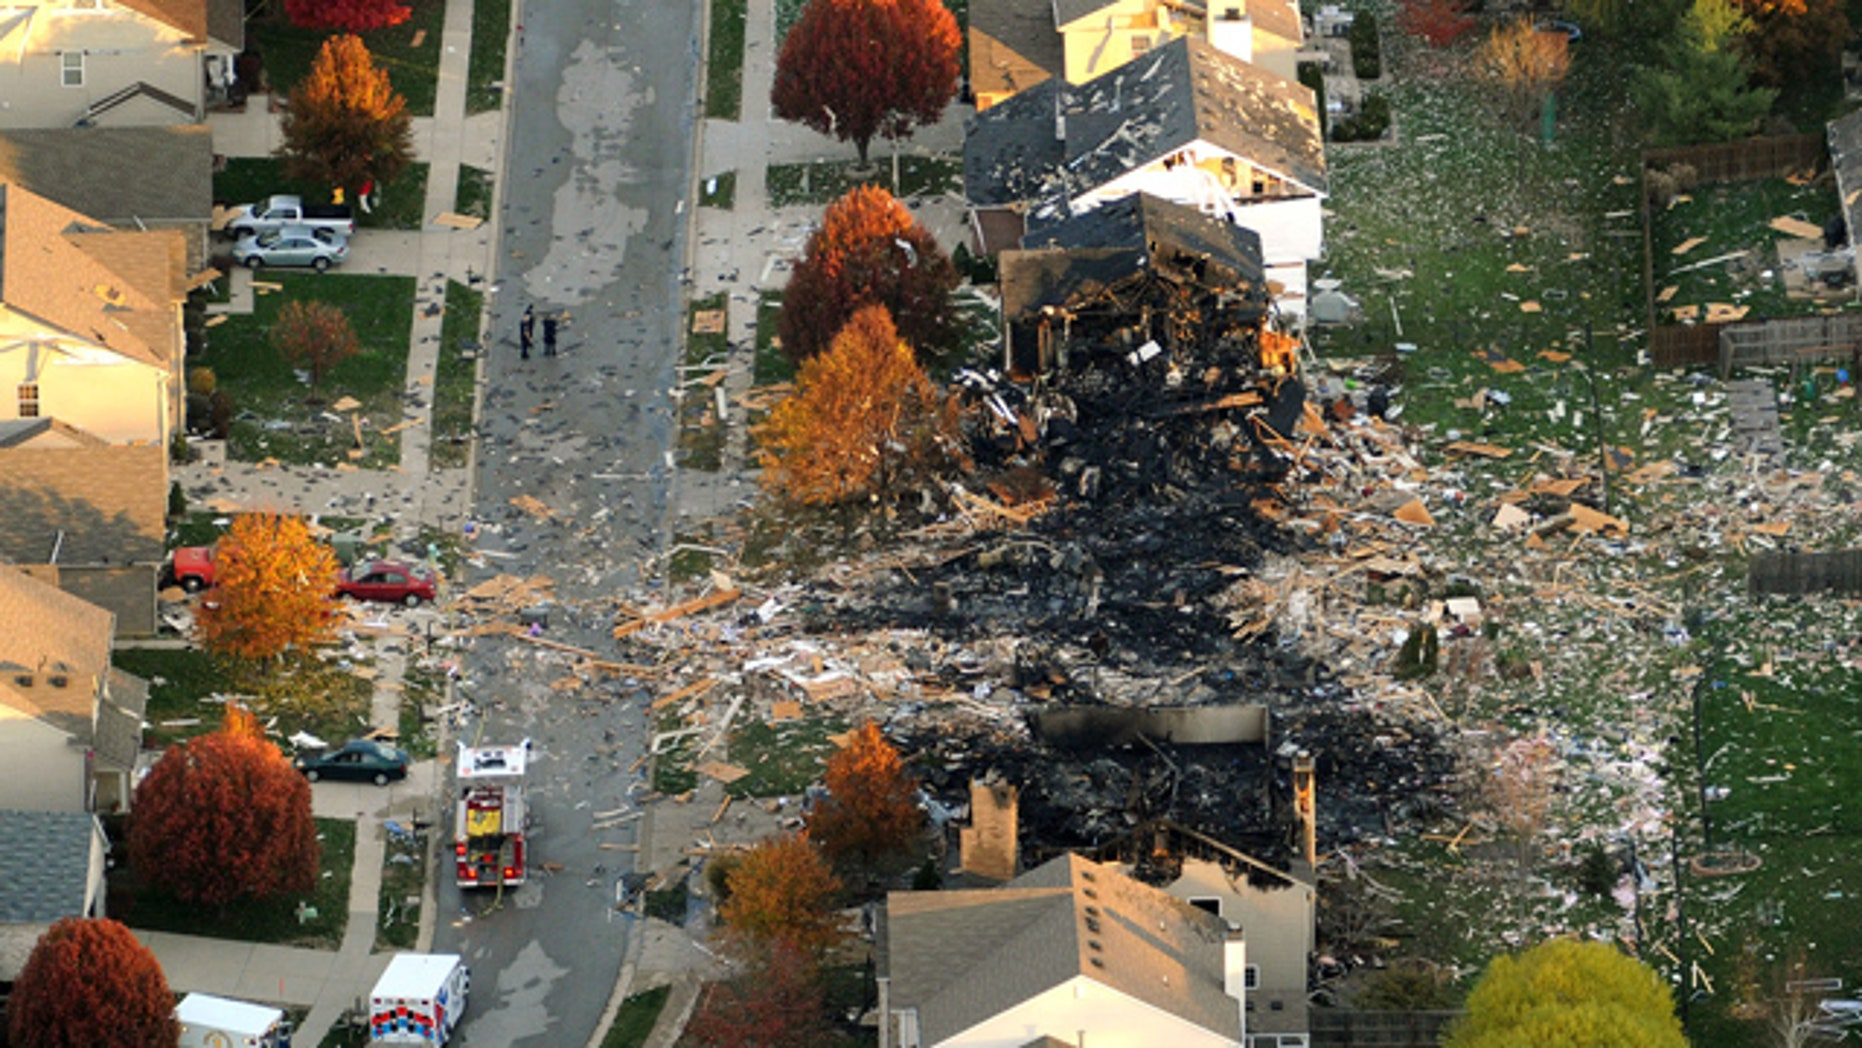 FILE - In this Nov. 11, 2012 file aerial photo are the two homes that were leveled and the neighboring homes that were damaged by a massive explosion in Indianapolis that sparked a huge fire and killed two people living in the neighborhood. On Tuesday, July 14, 2015, a jury convicted Mark Leonard of murder, arson and insurance fraud for his role in the explosion that devastated the subdivision. (AP Photo/The Indianapolis Star, Matt Kryger, File)